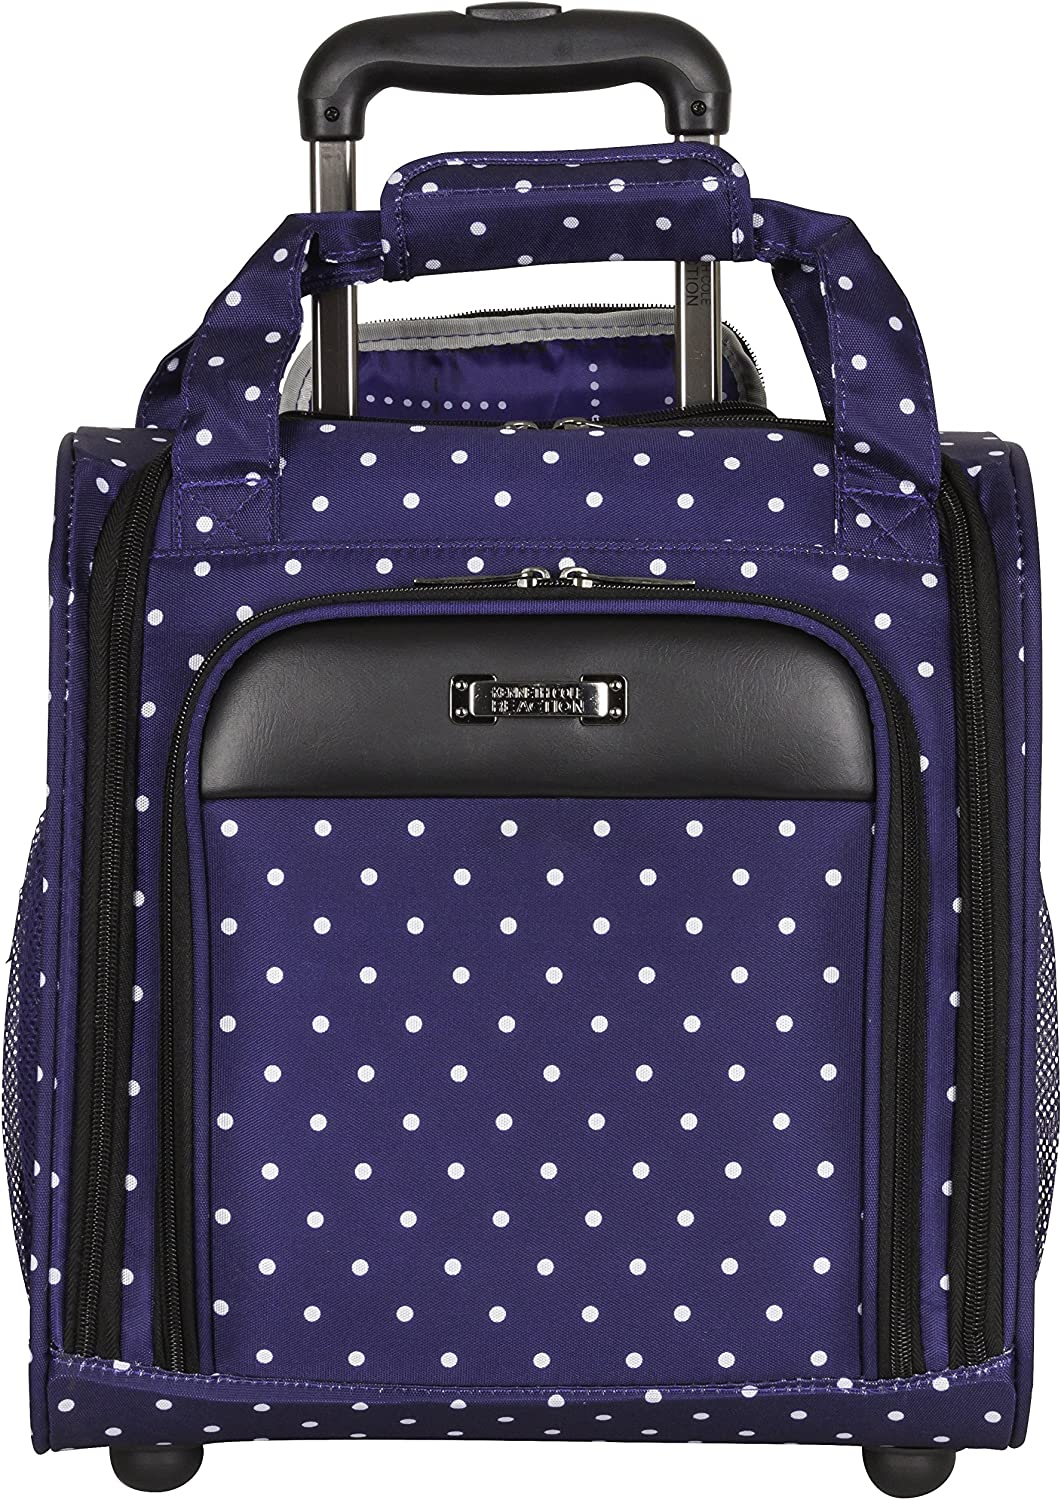 "Kenneth Cole Reaction Dot Matrix 14"" Lightweight 2-Wheel Underseater Carry-On Luggage, Navy"